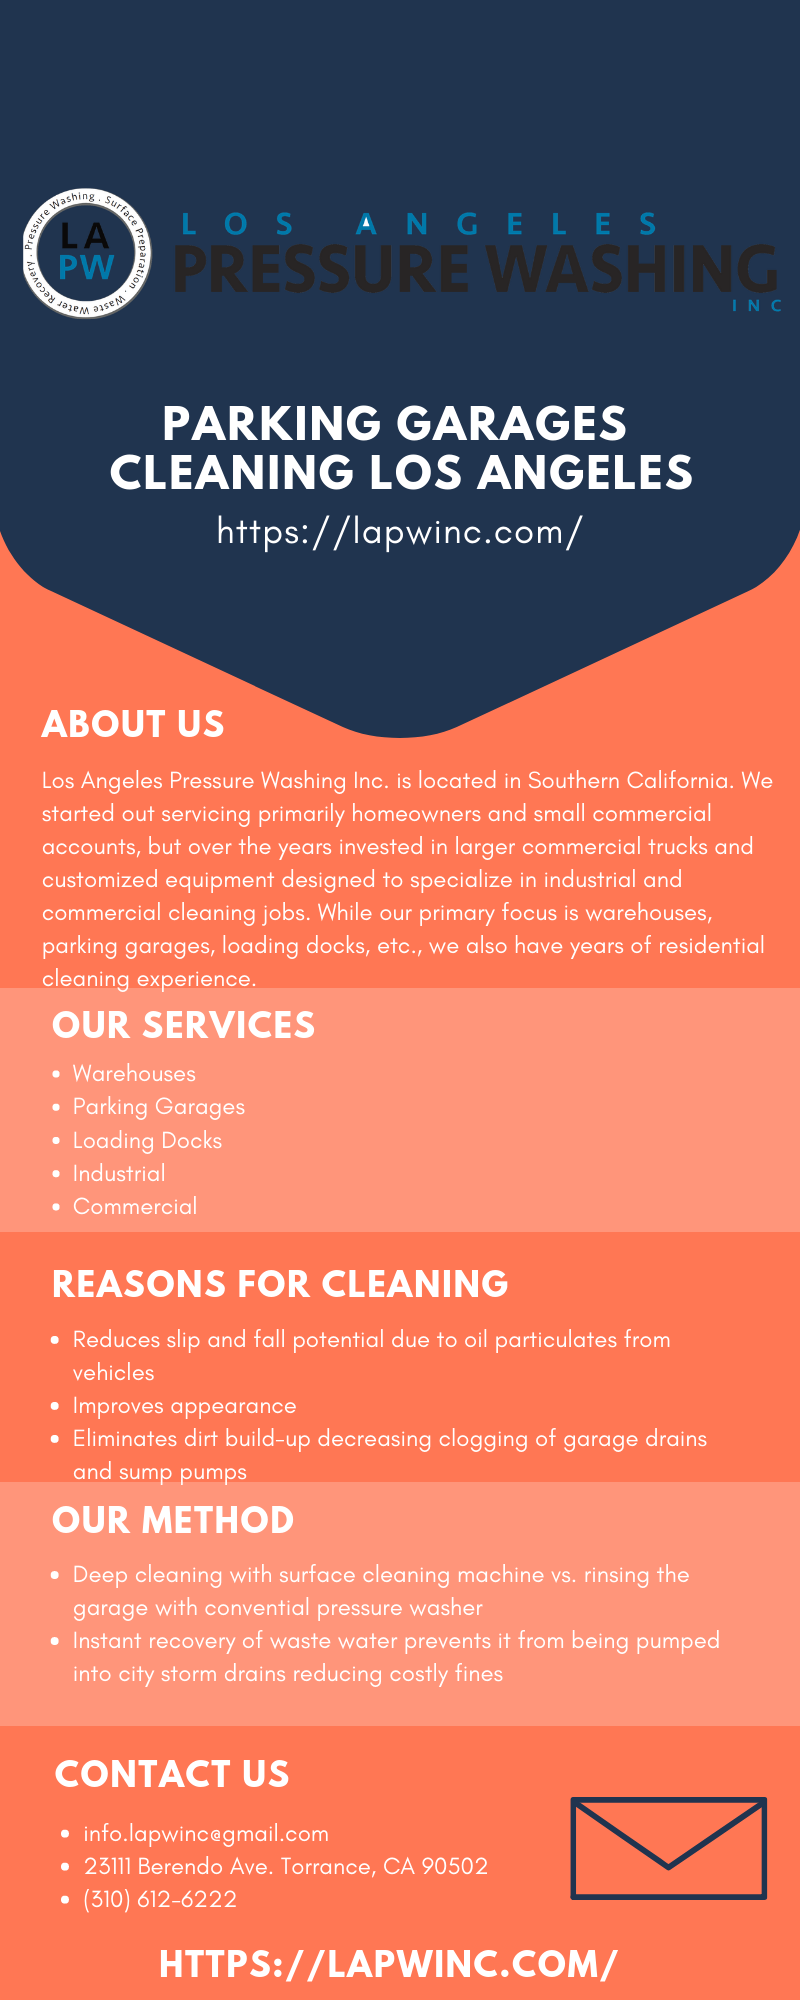 Parking Garages Cleaning Los Angeles Clean Garage Parking Garage Garages